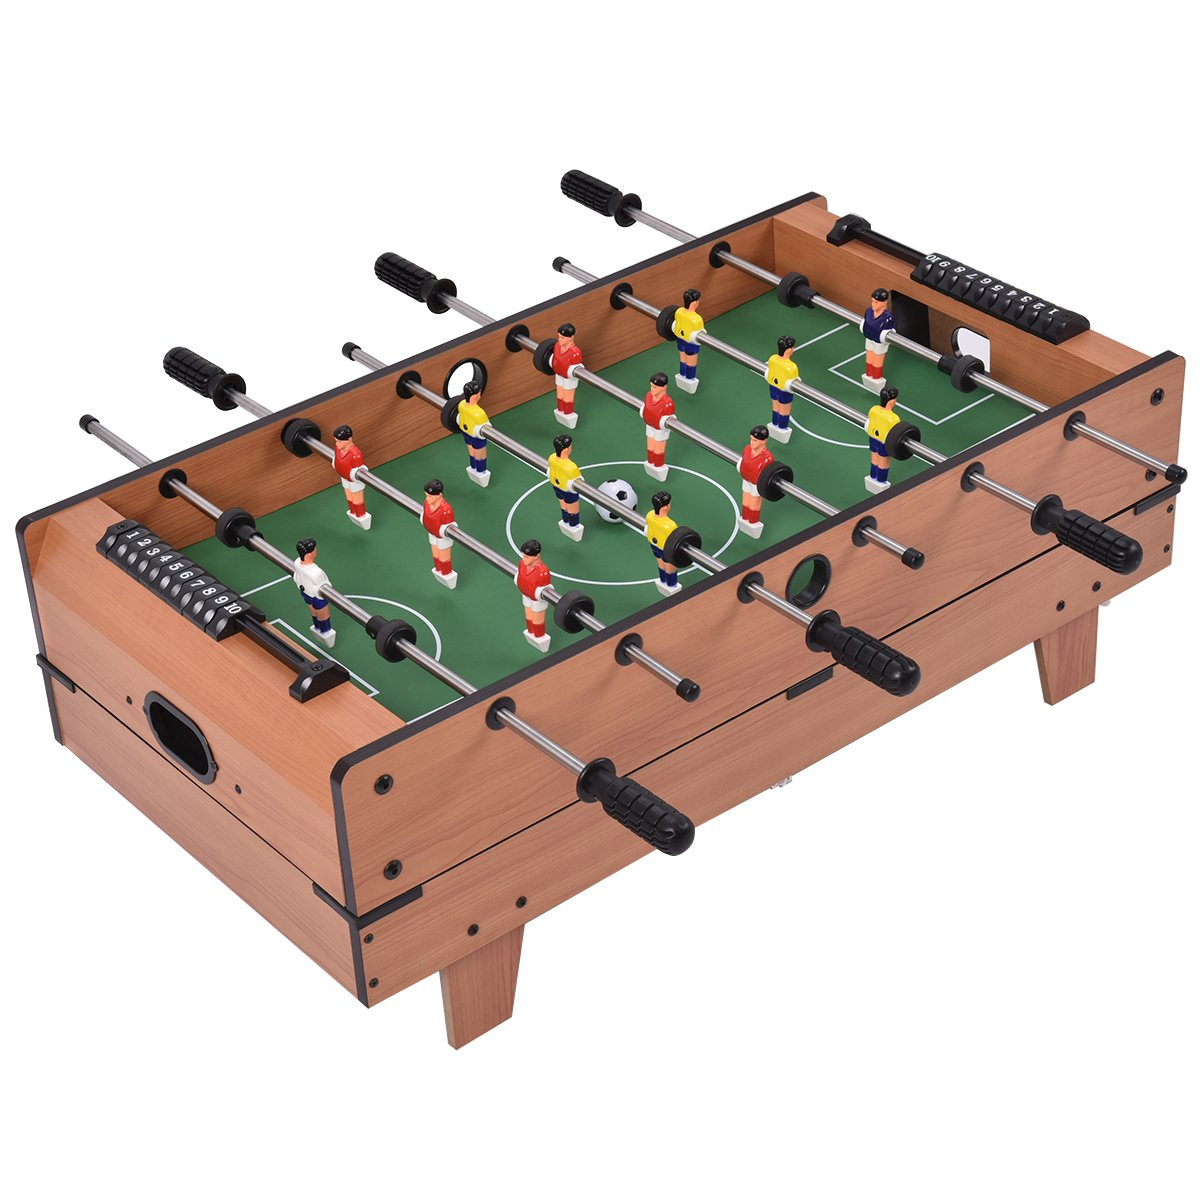 Table multi-jeux 4 en 1 Baby-foot Tennis de table Hockey et Billard Gain de place Blitzzauber24